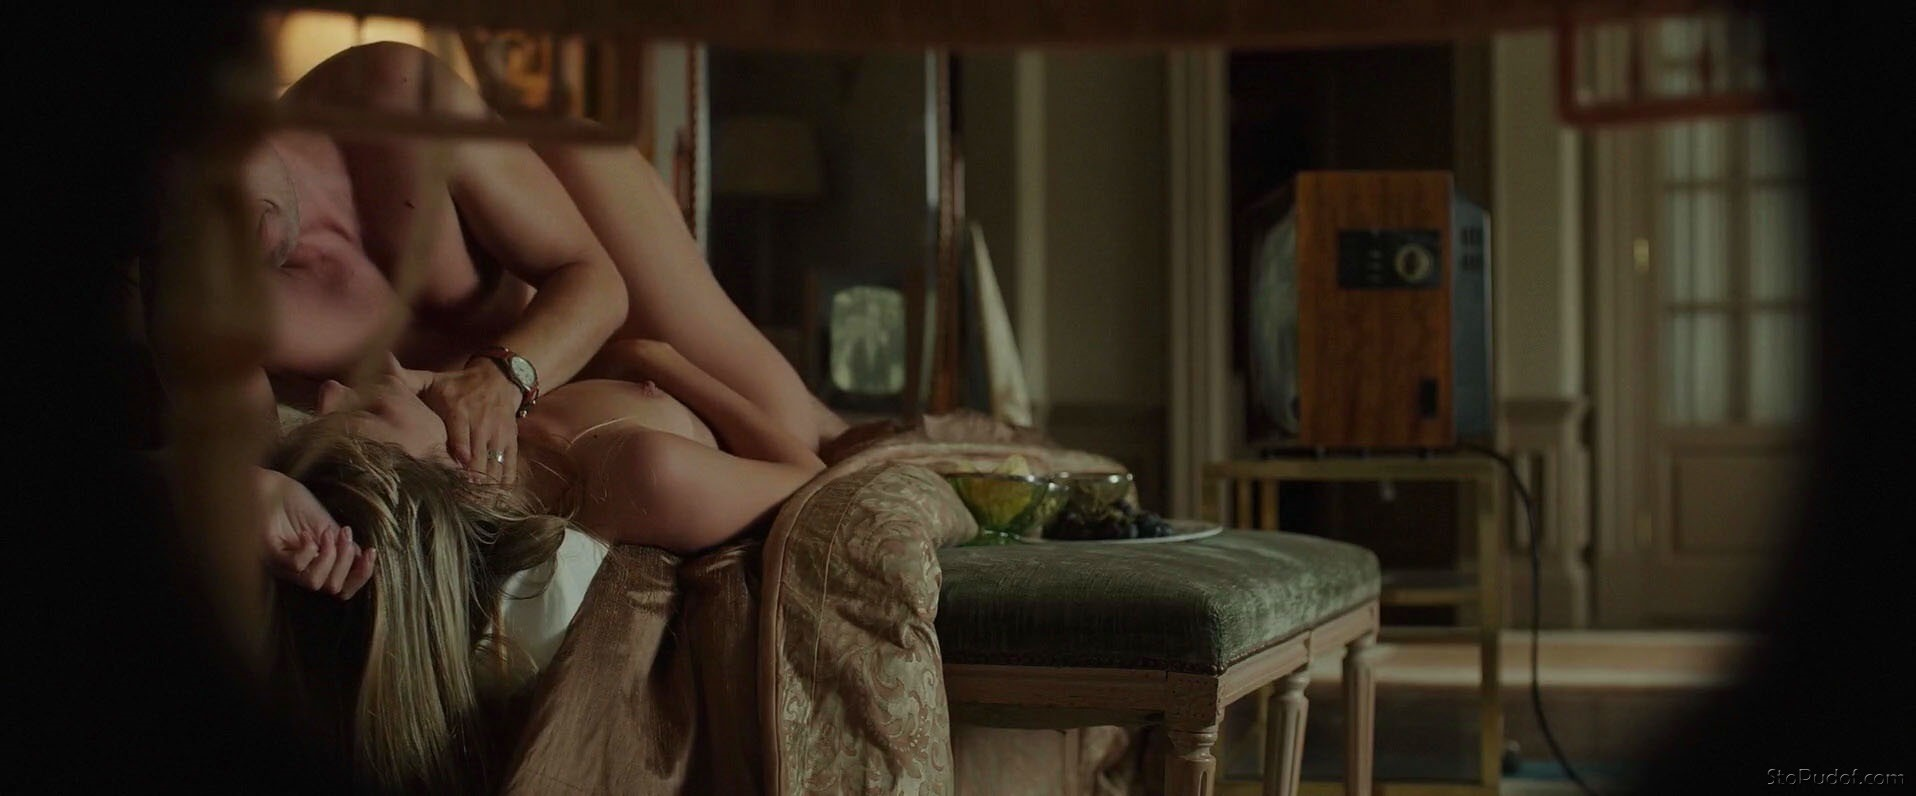 new Melanie Laurent naked pics - UkPhotoSafari